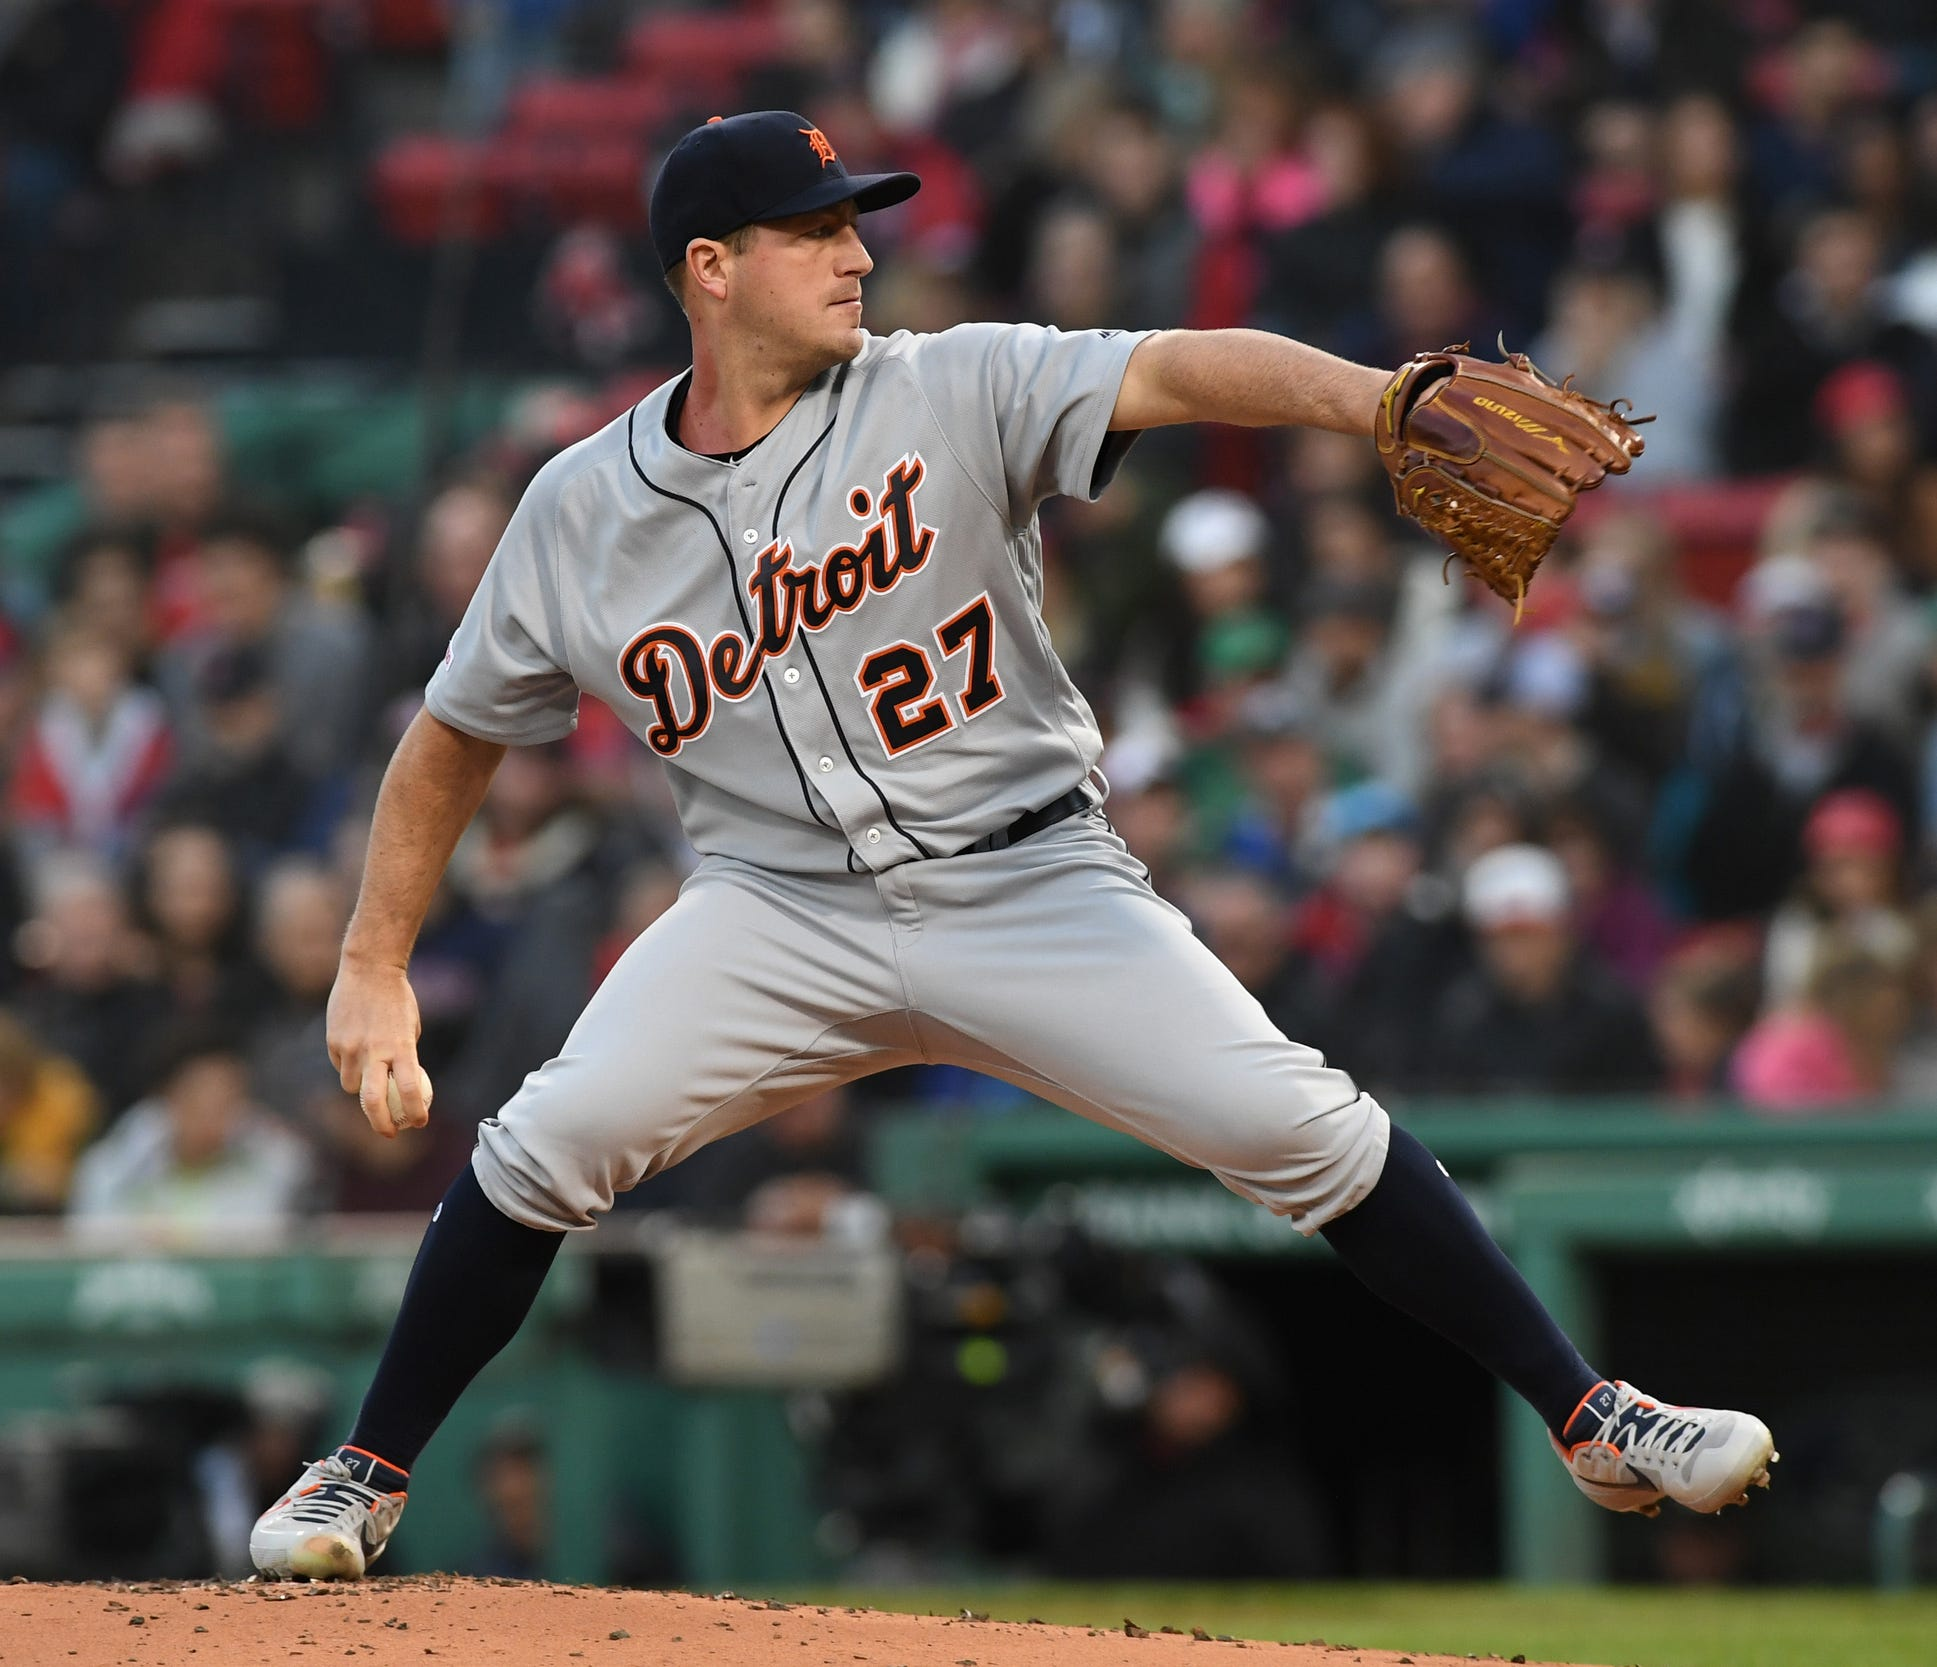 Tigers pitcher Jordan Zimmermann pitches during the first inning on Thursday, April 25, 2019, in Boston.